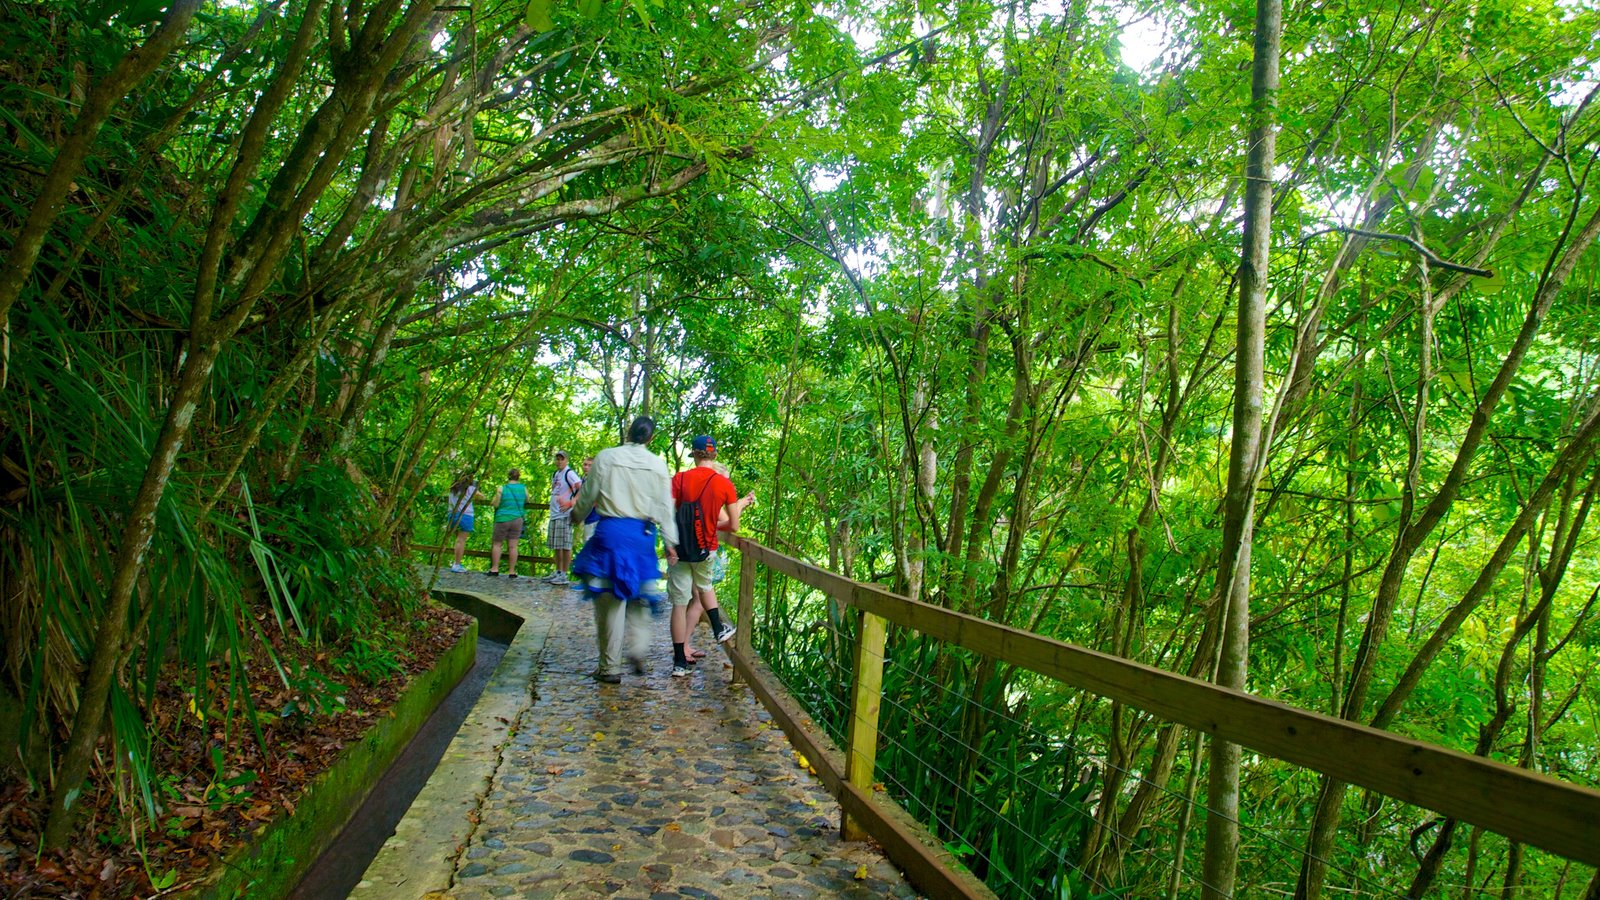 Hacienda Buena Vista which includes hiking or walking and rainforest as well as a small group of people